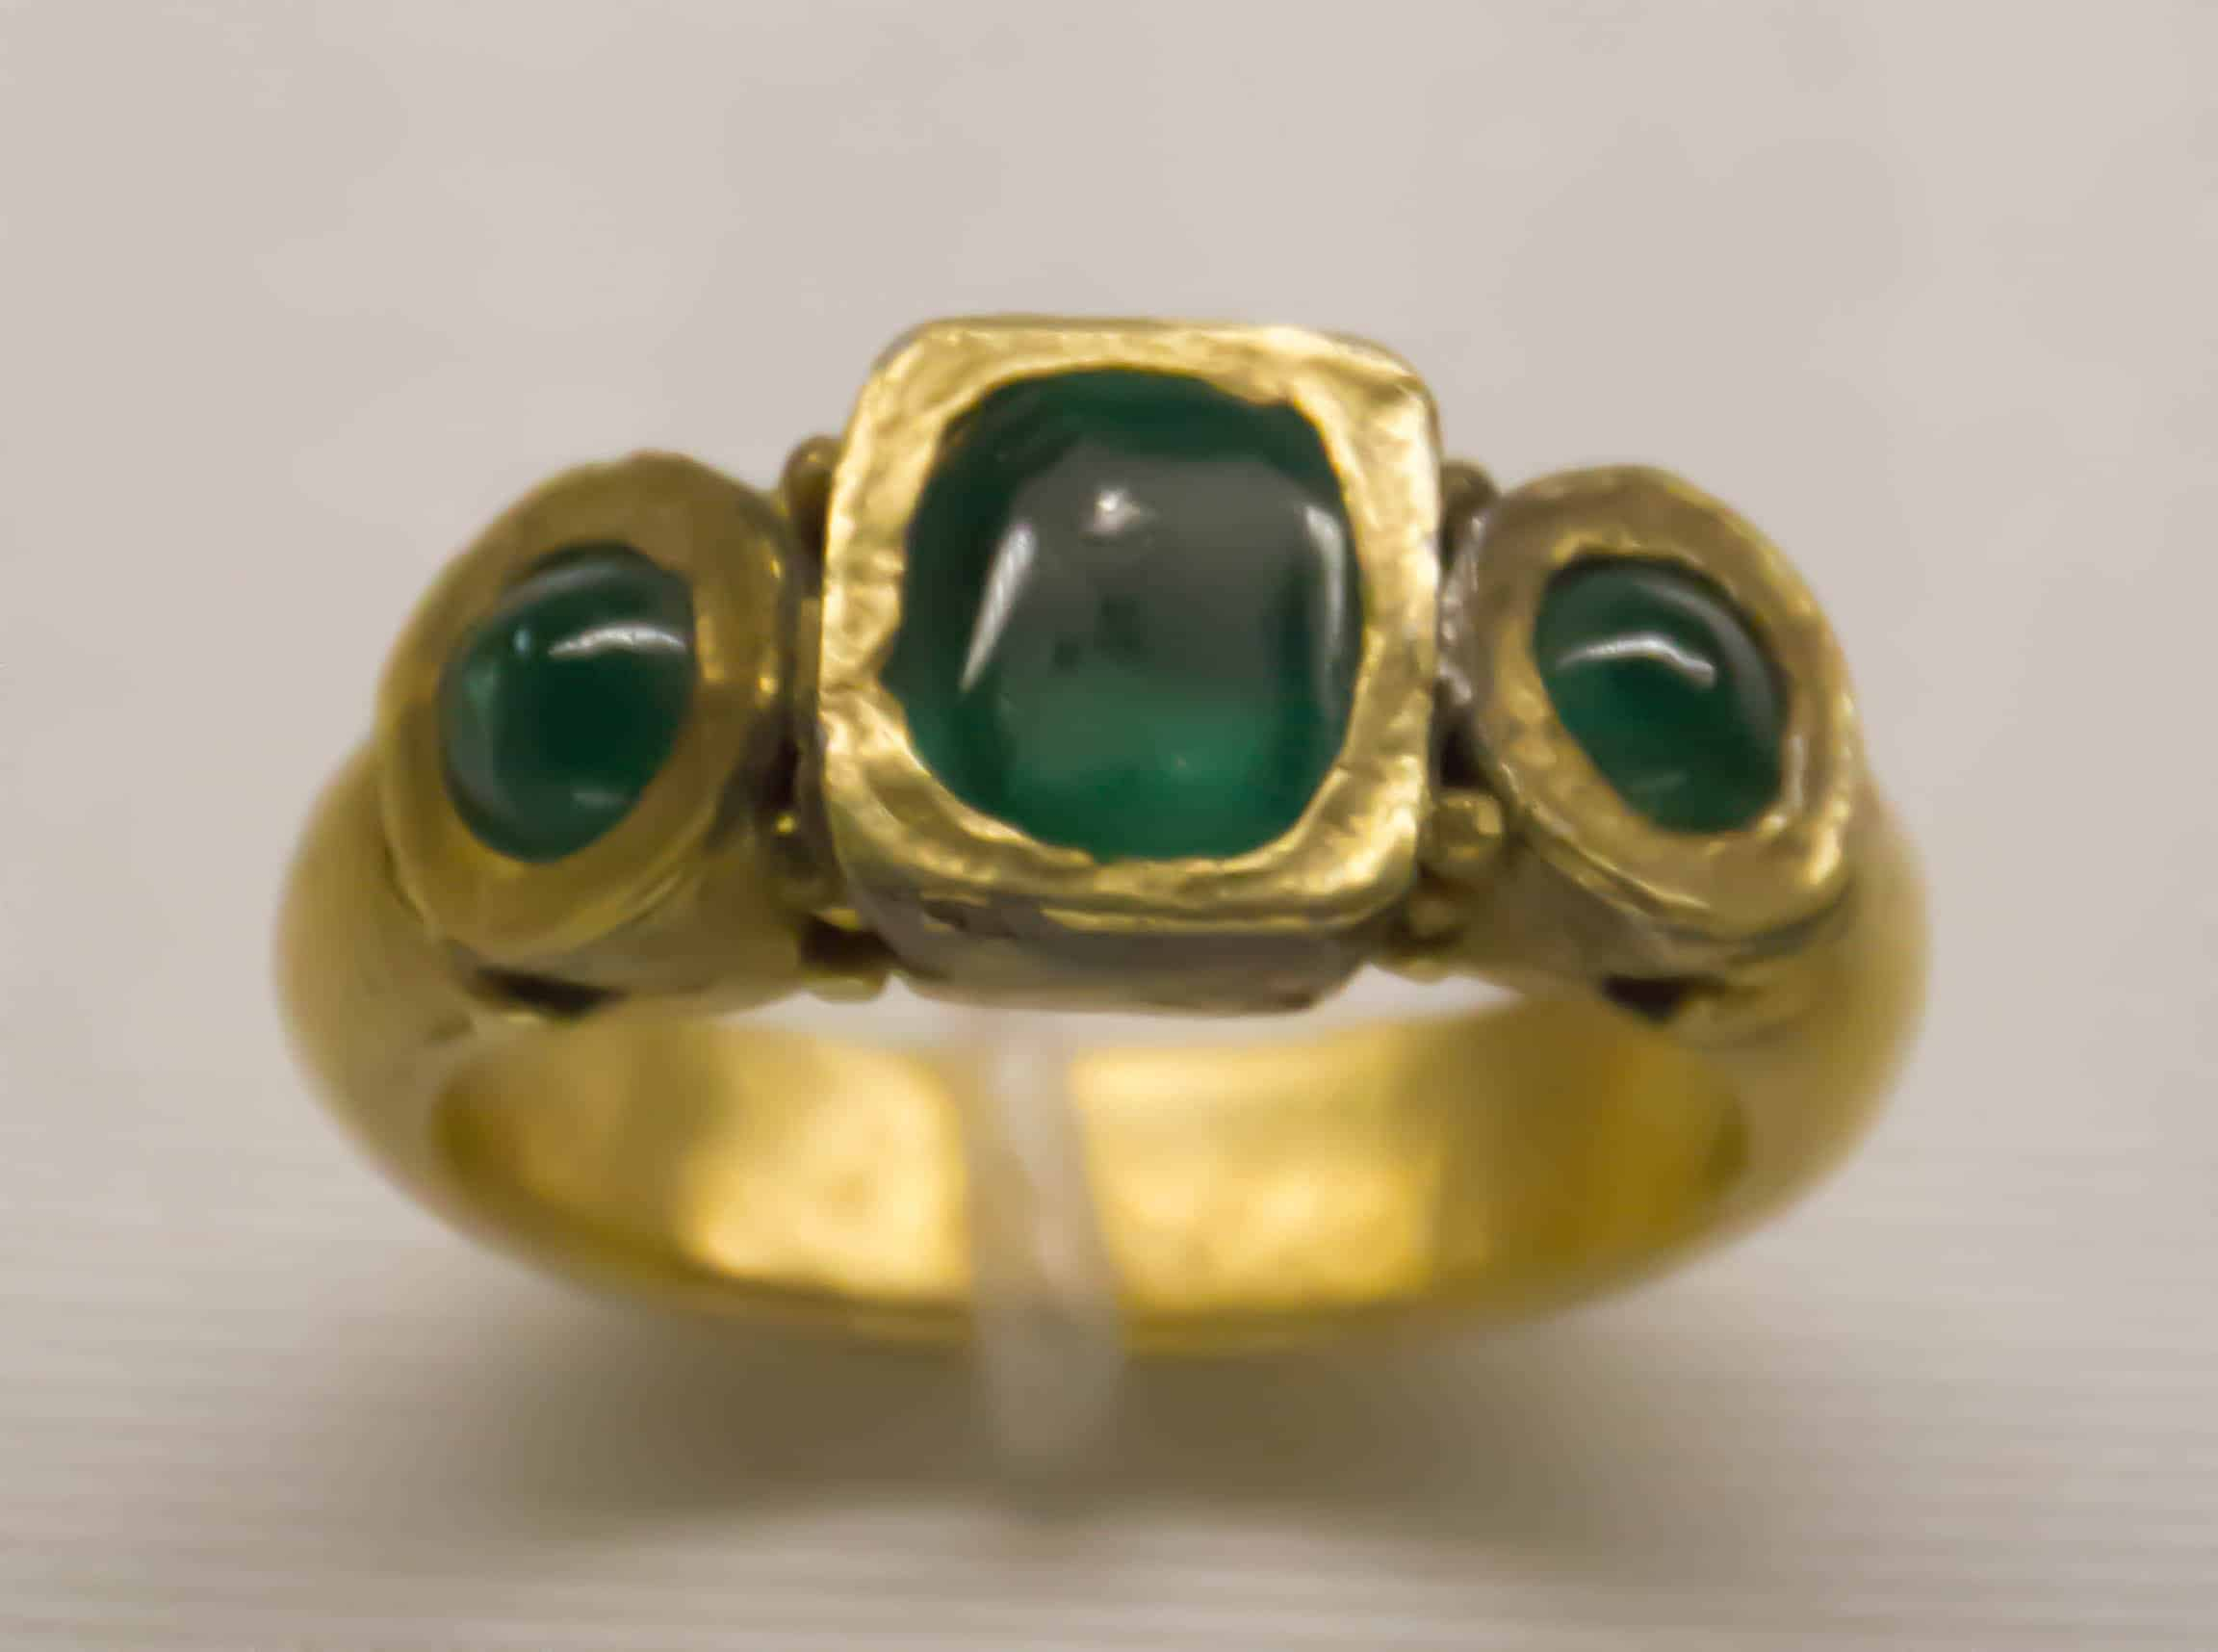 Rings Ancient to Neoclassical AJU